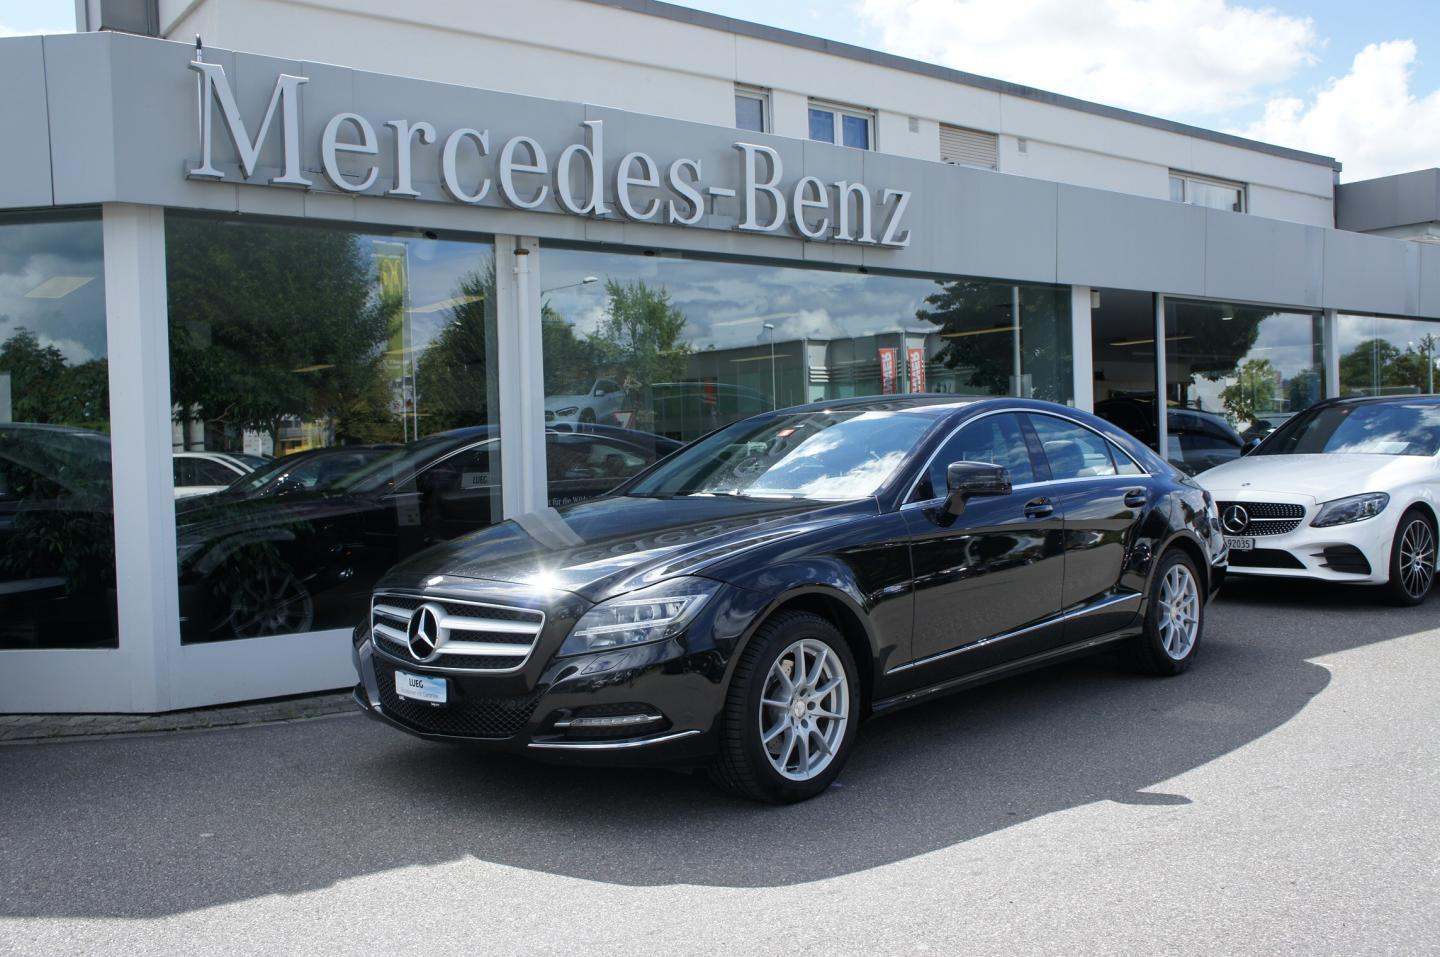 CLS 350 7G-Tronic